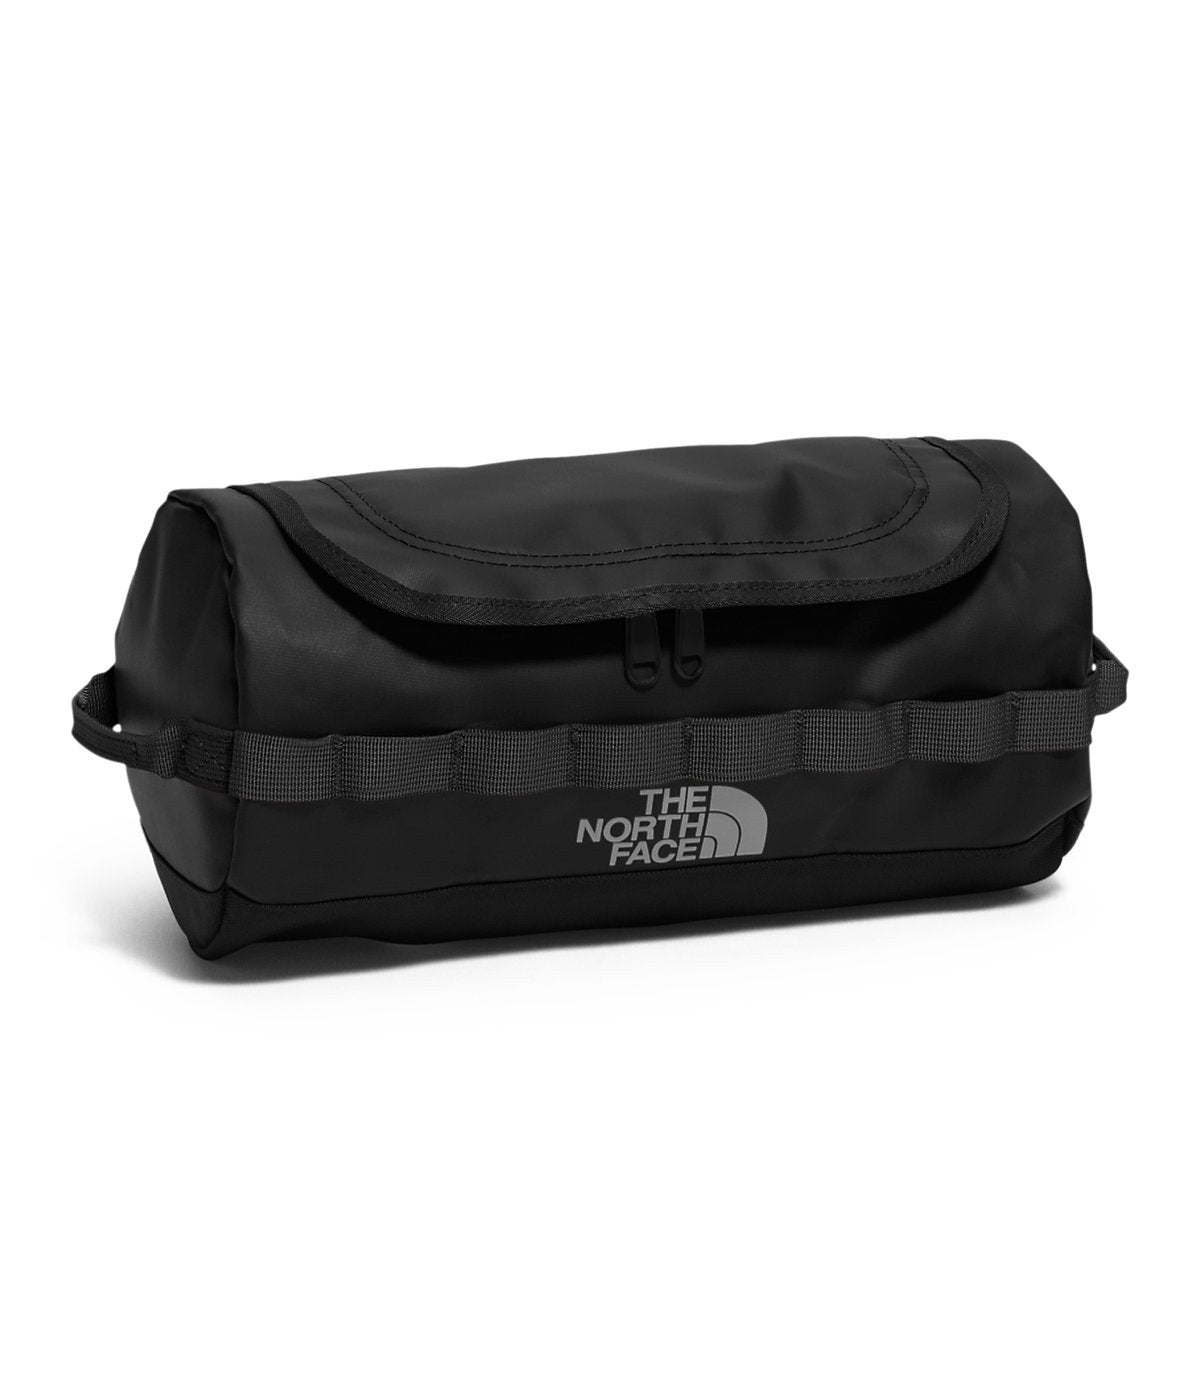 2b287358650f The North Face Base Camp Travel Canister Washbag Small - Outdoor Sports